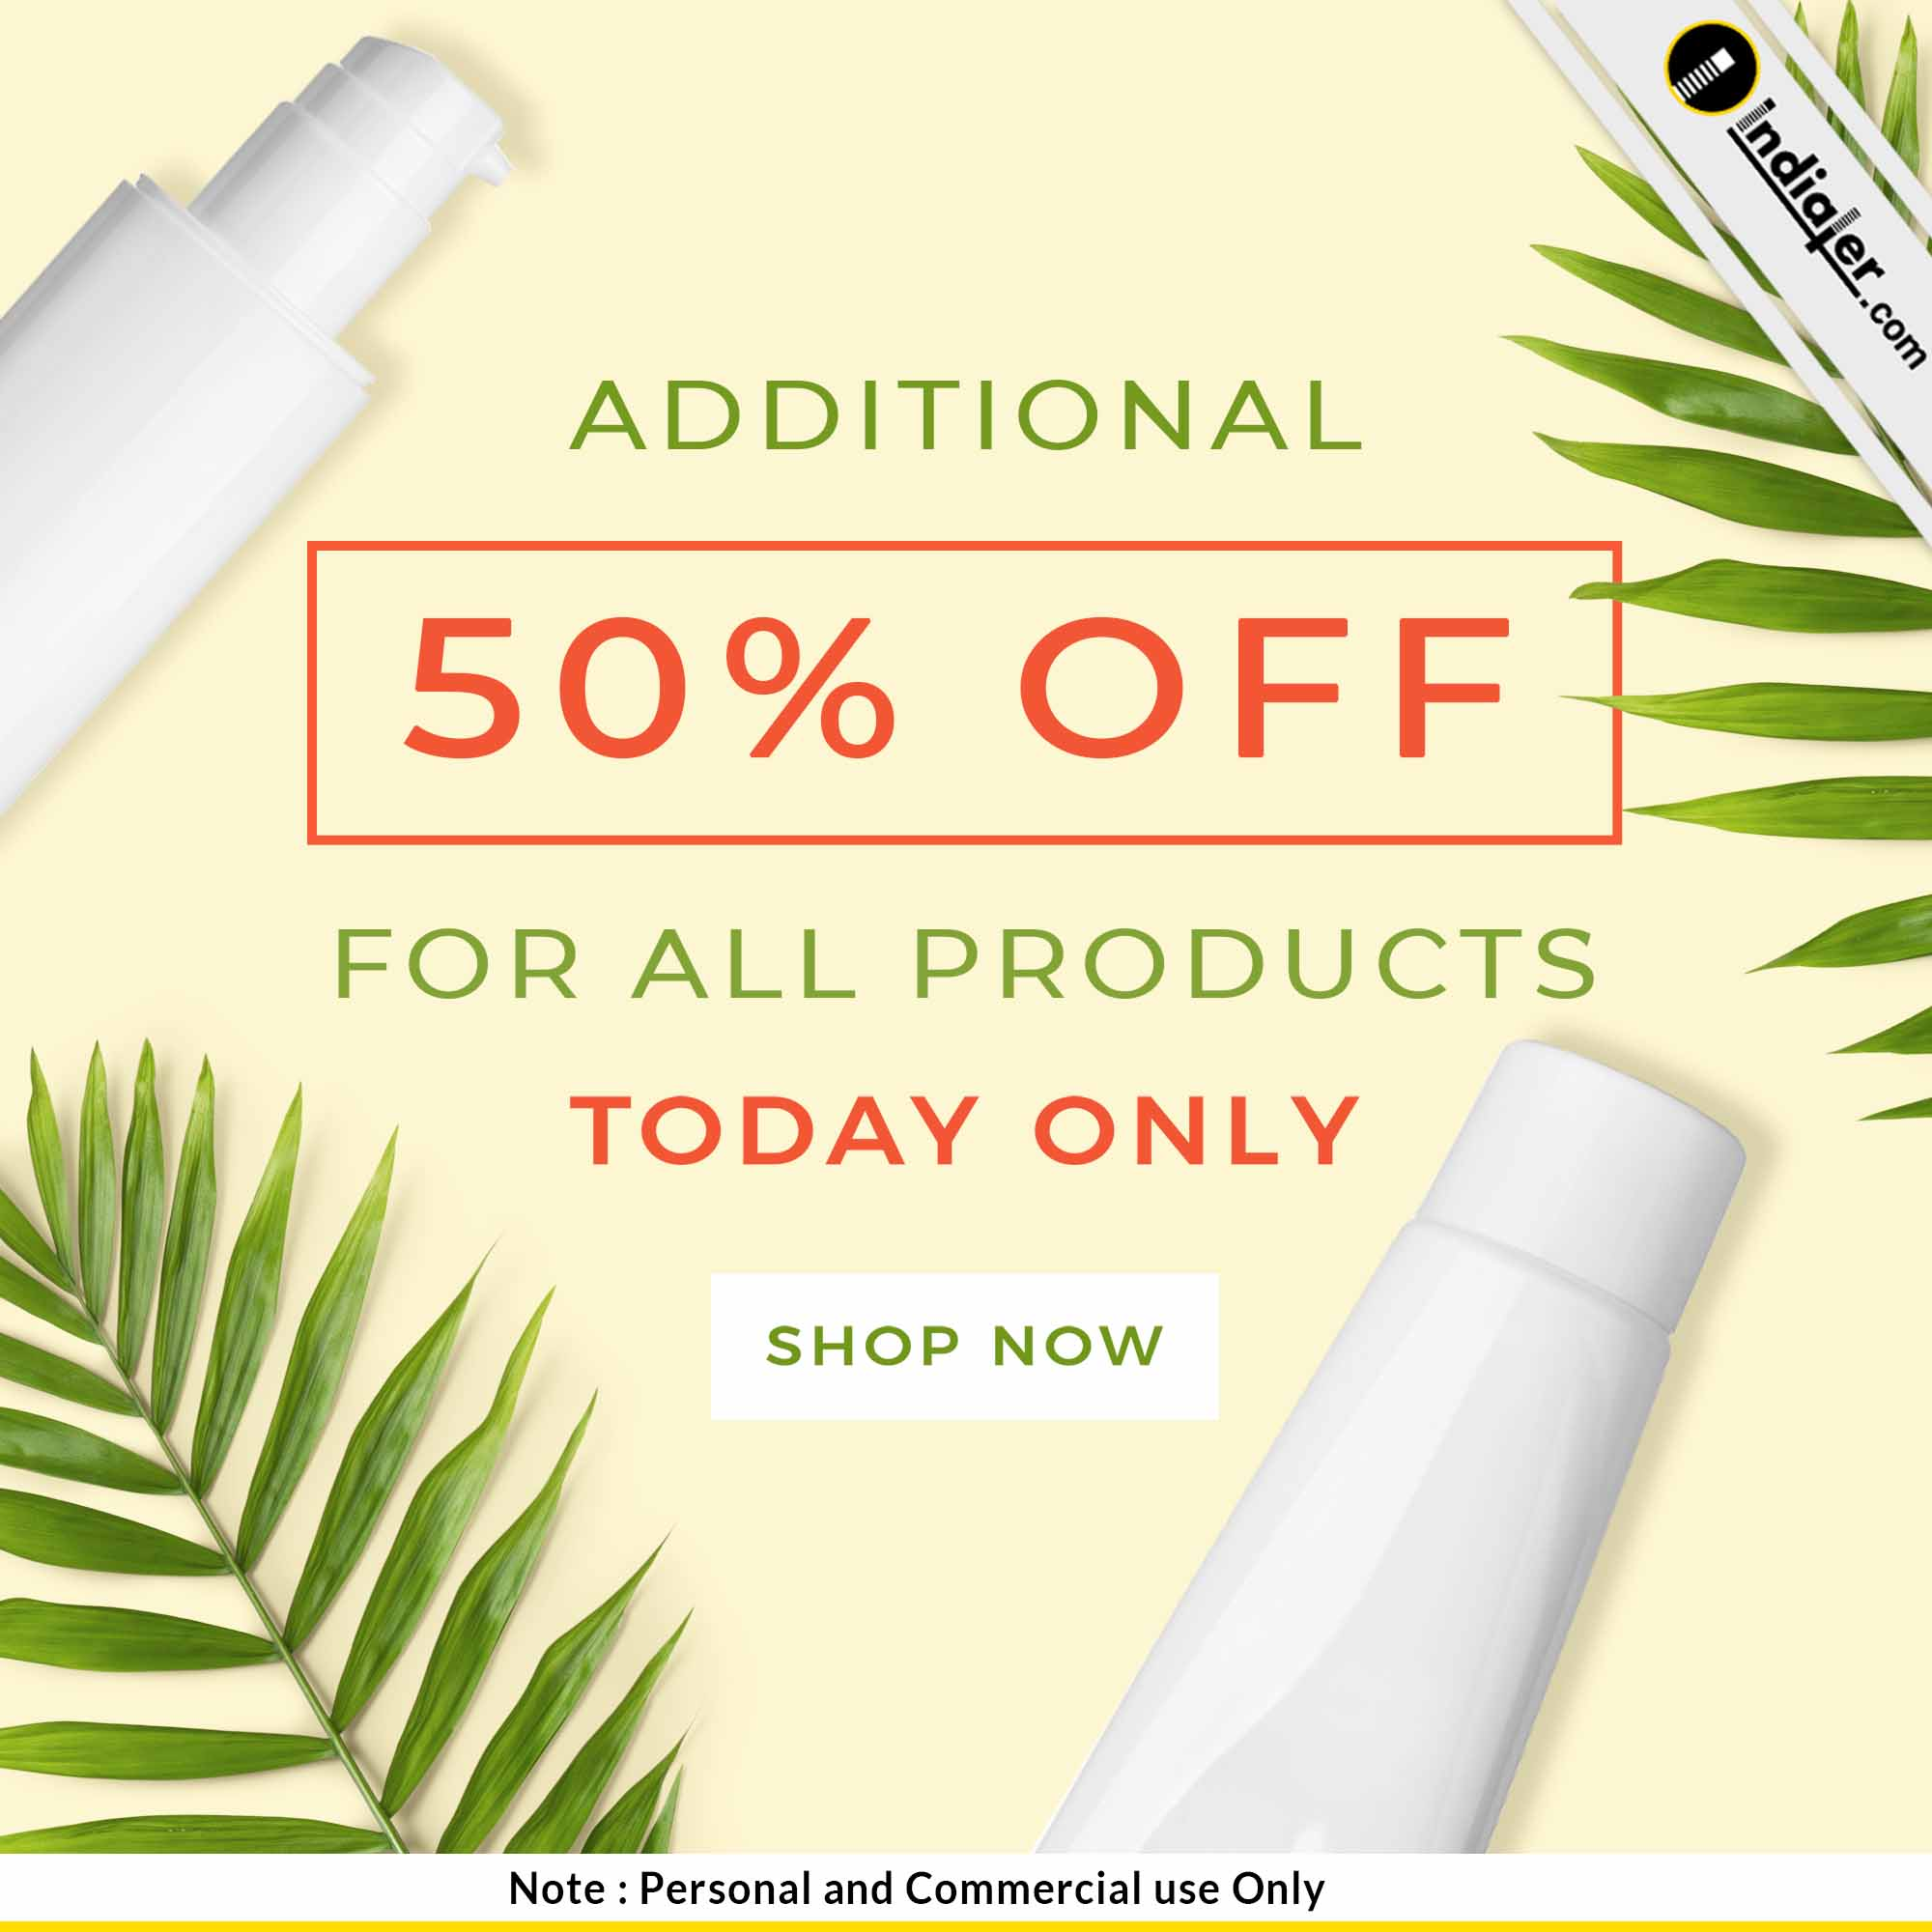 additional product sale discount offer ads banner design